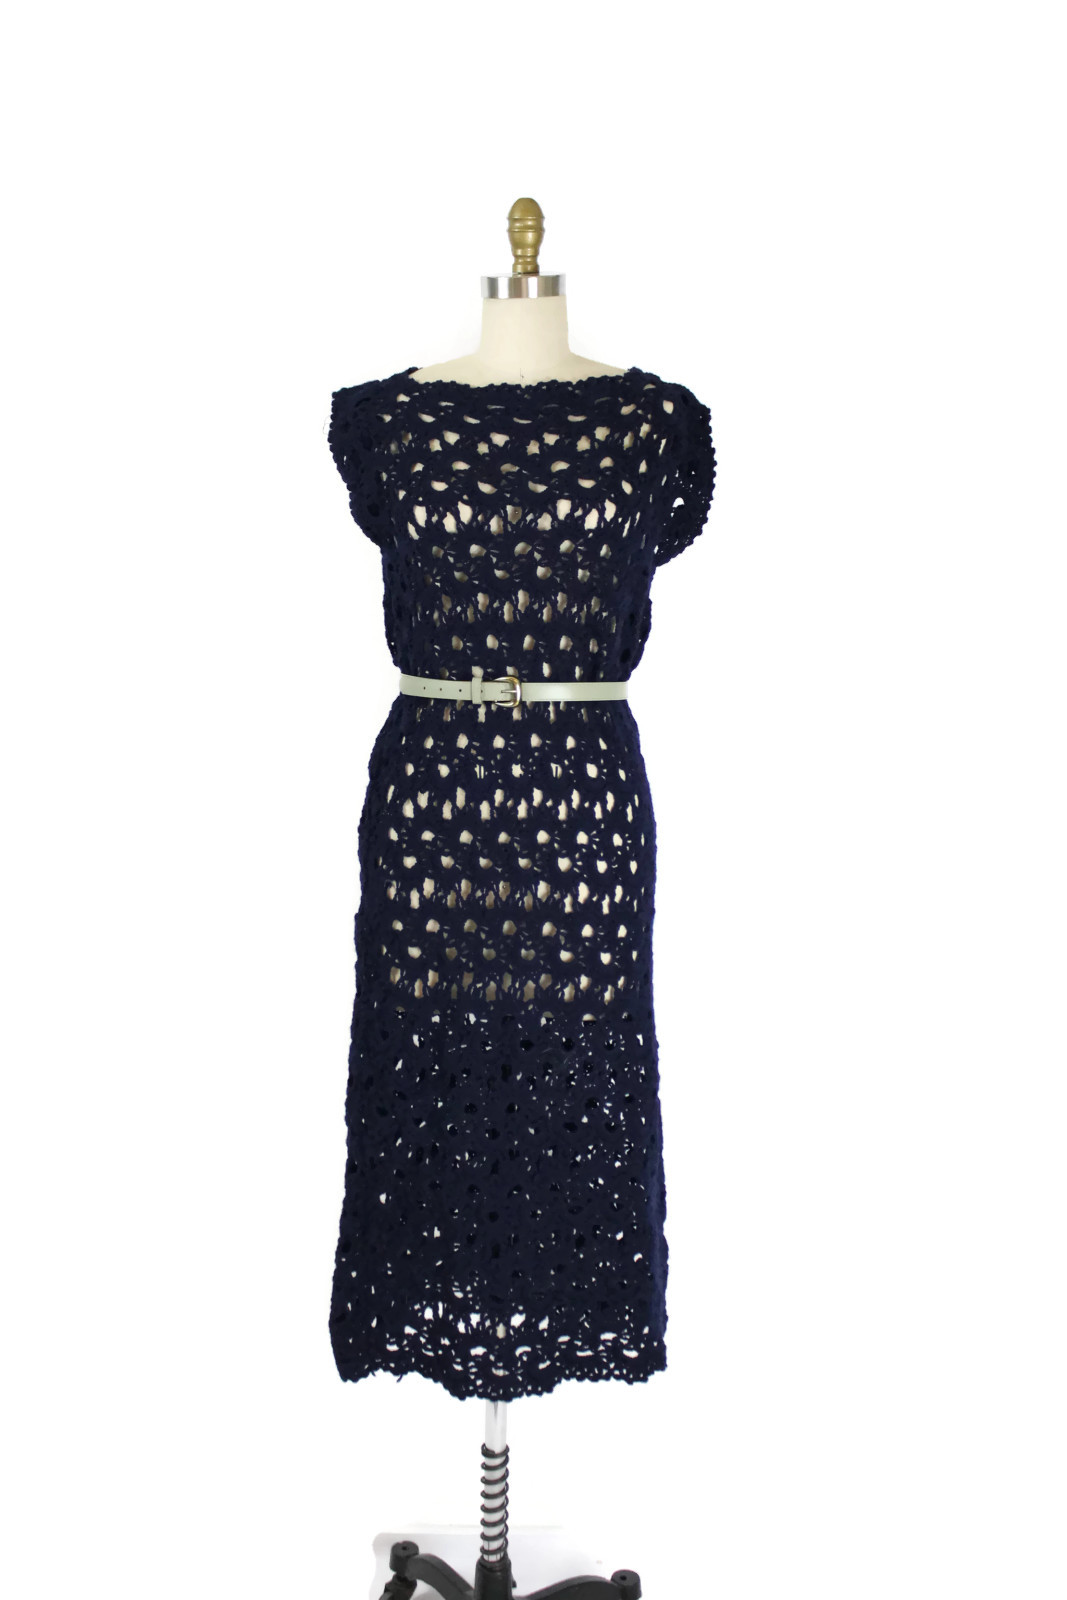 1970s arts and crafts movement hand crocheted dress